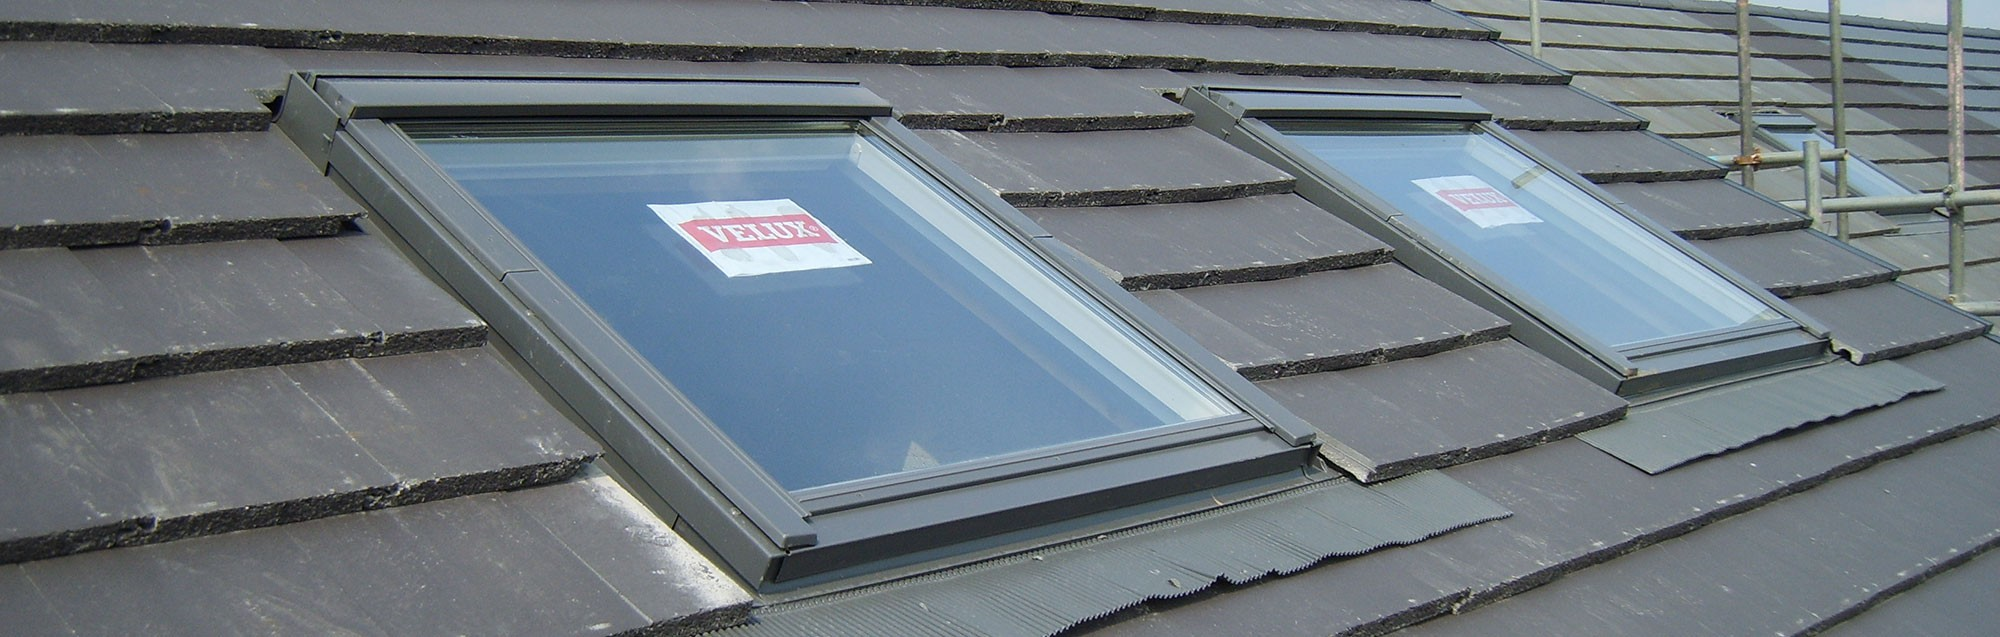 Velux windows in slate roof